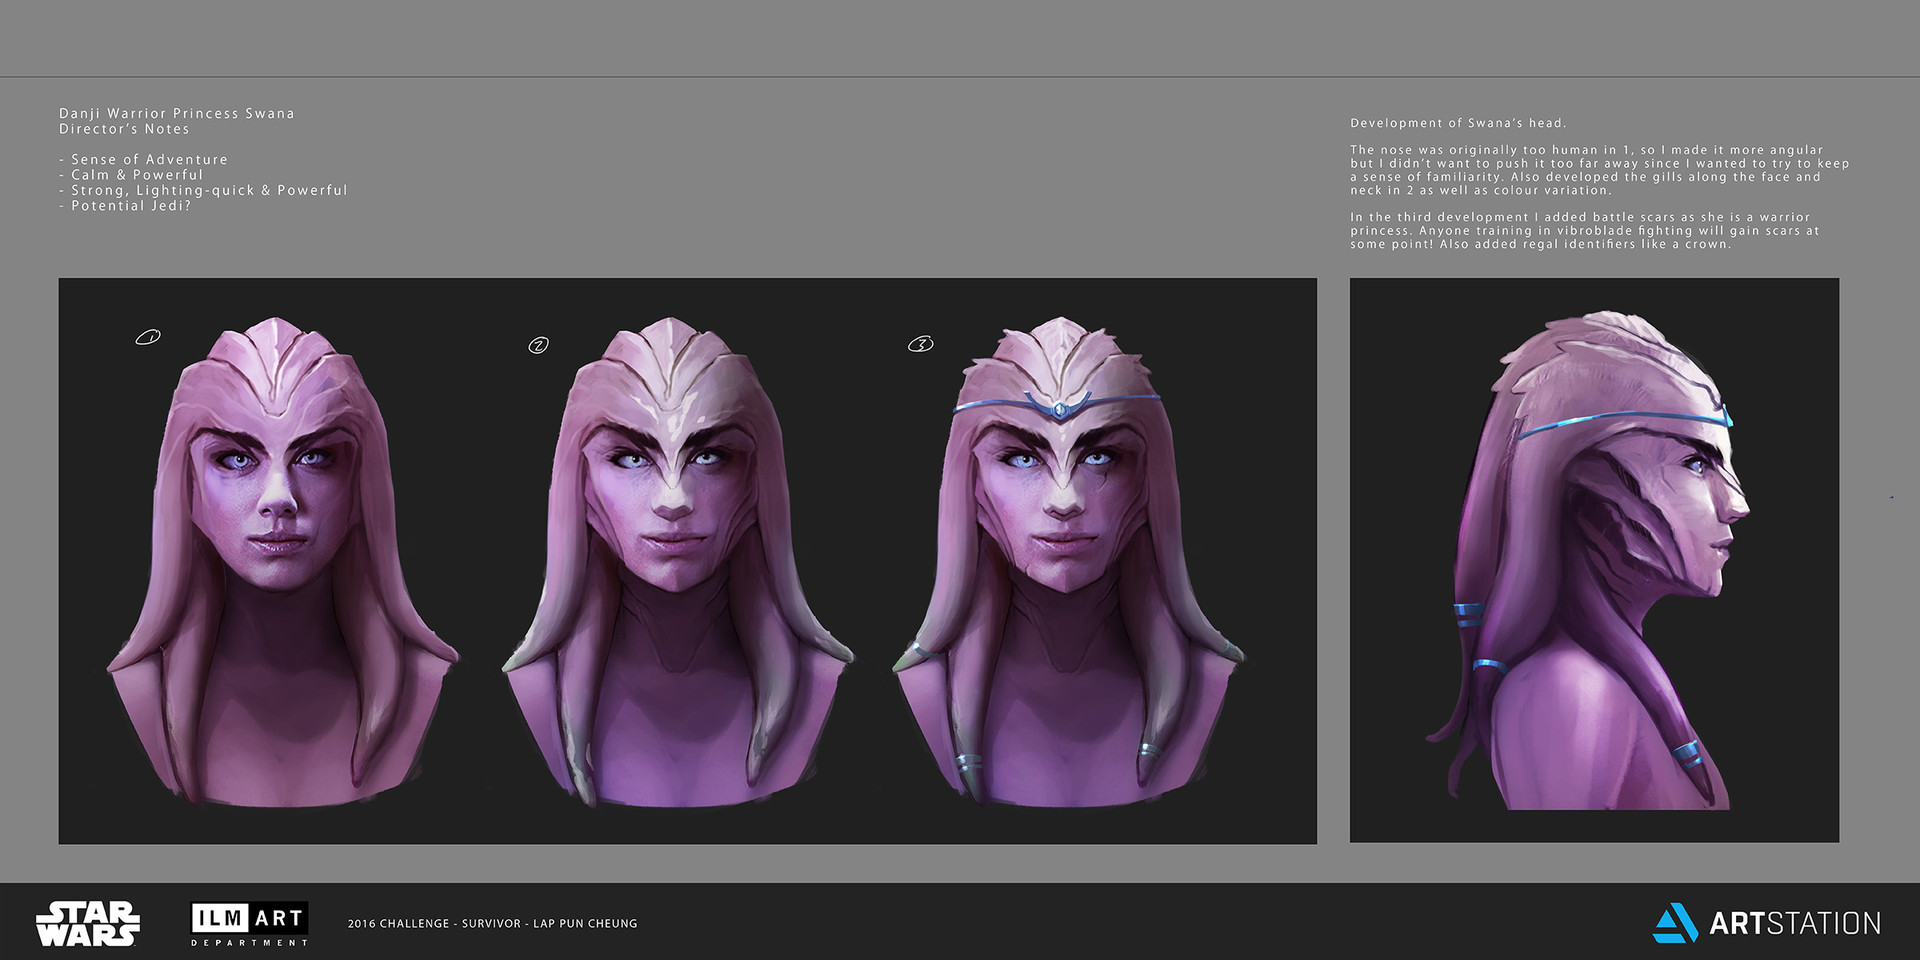 Lap pun cheung the job character design danji warrior princess swana concept art 002 online